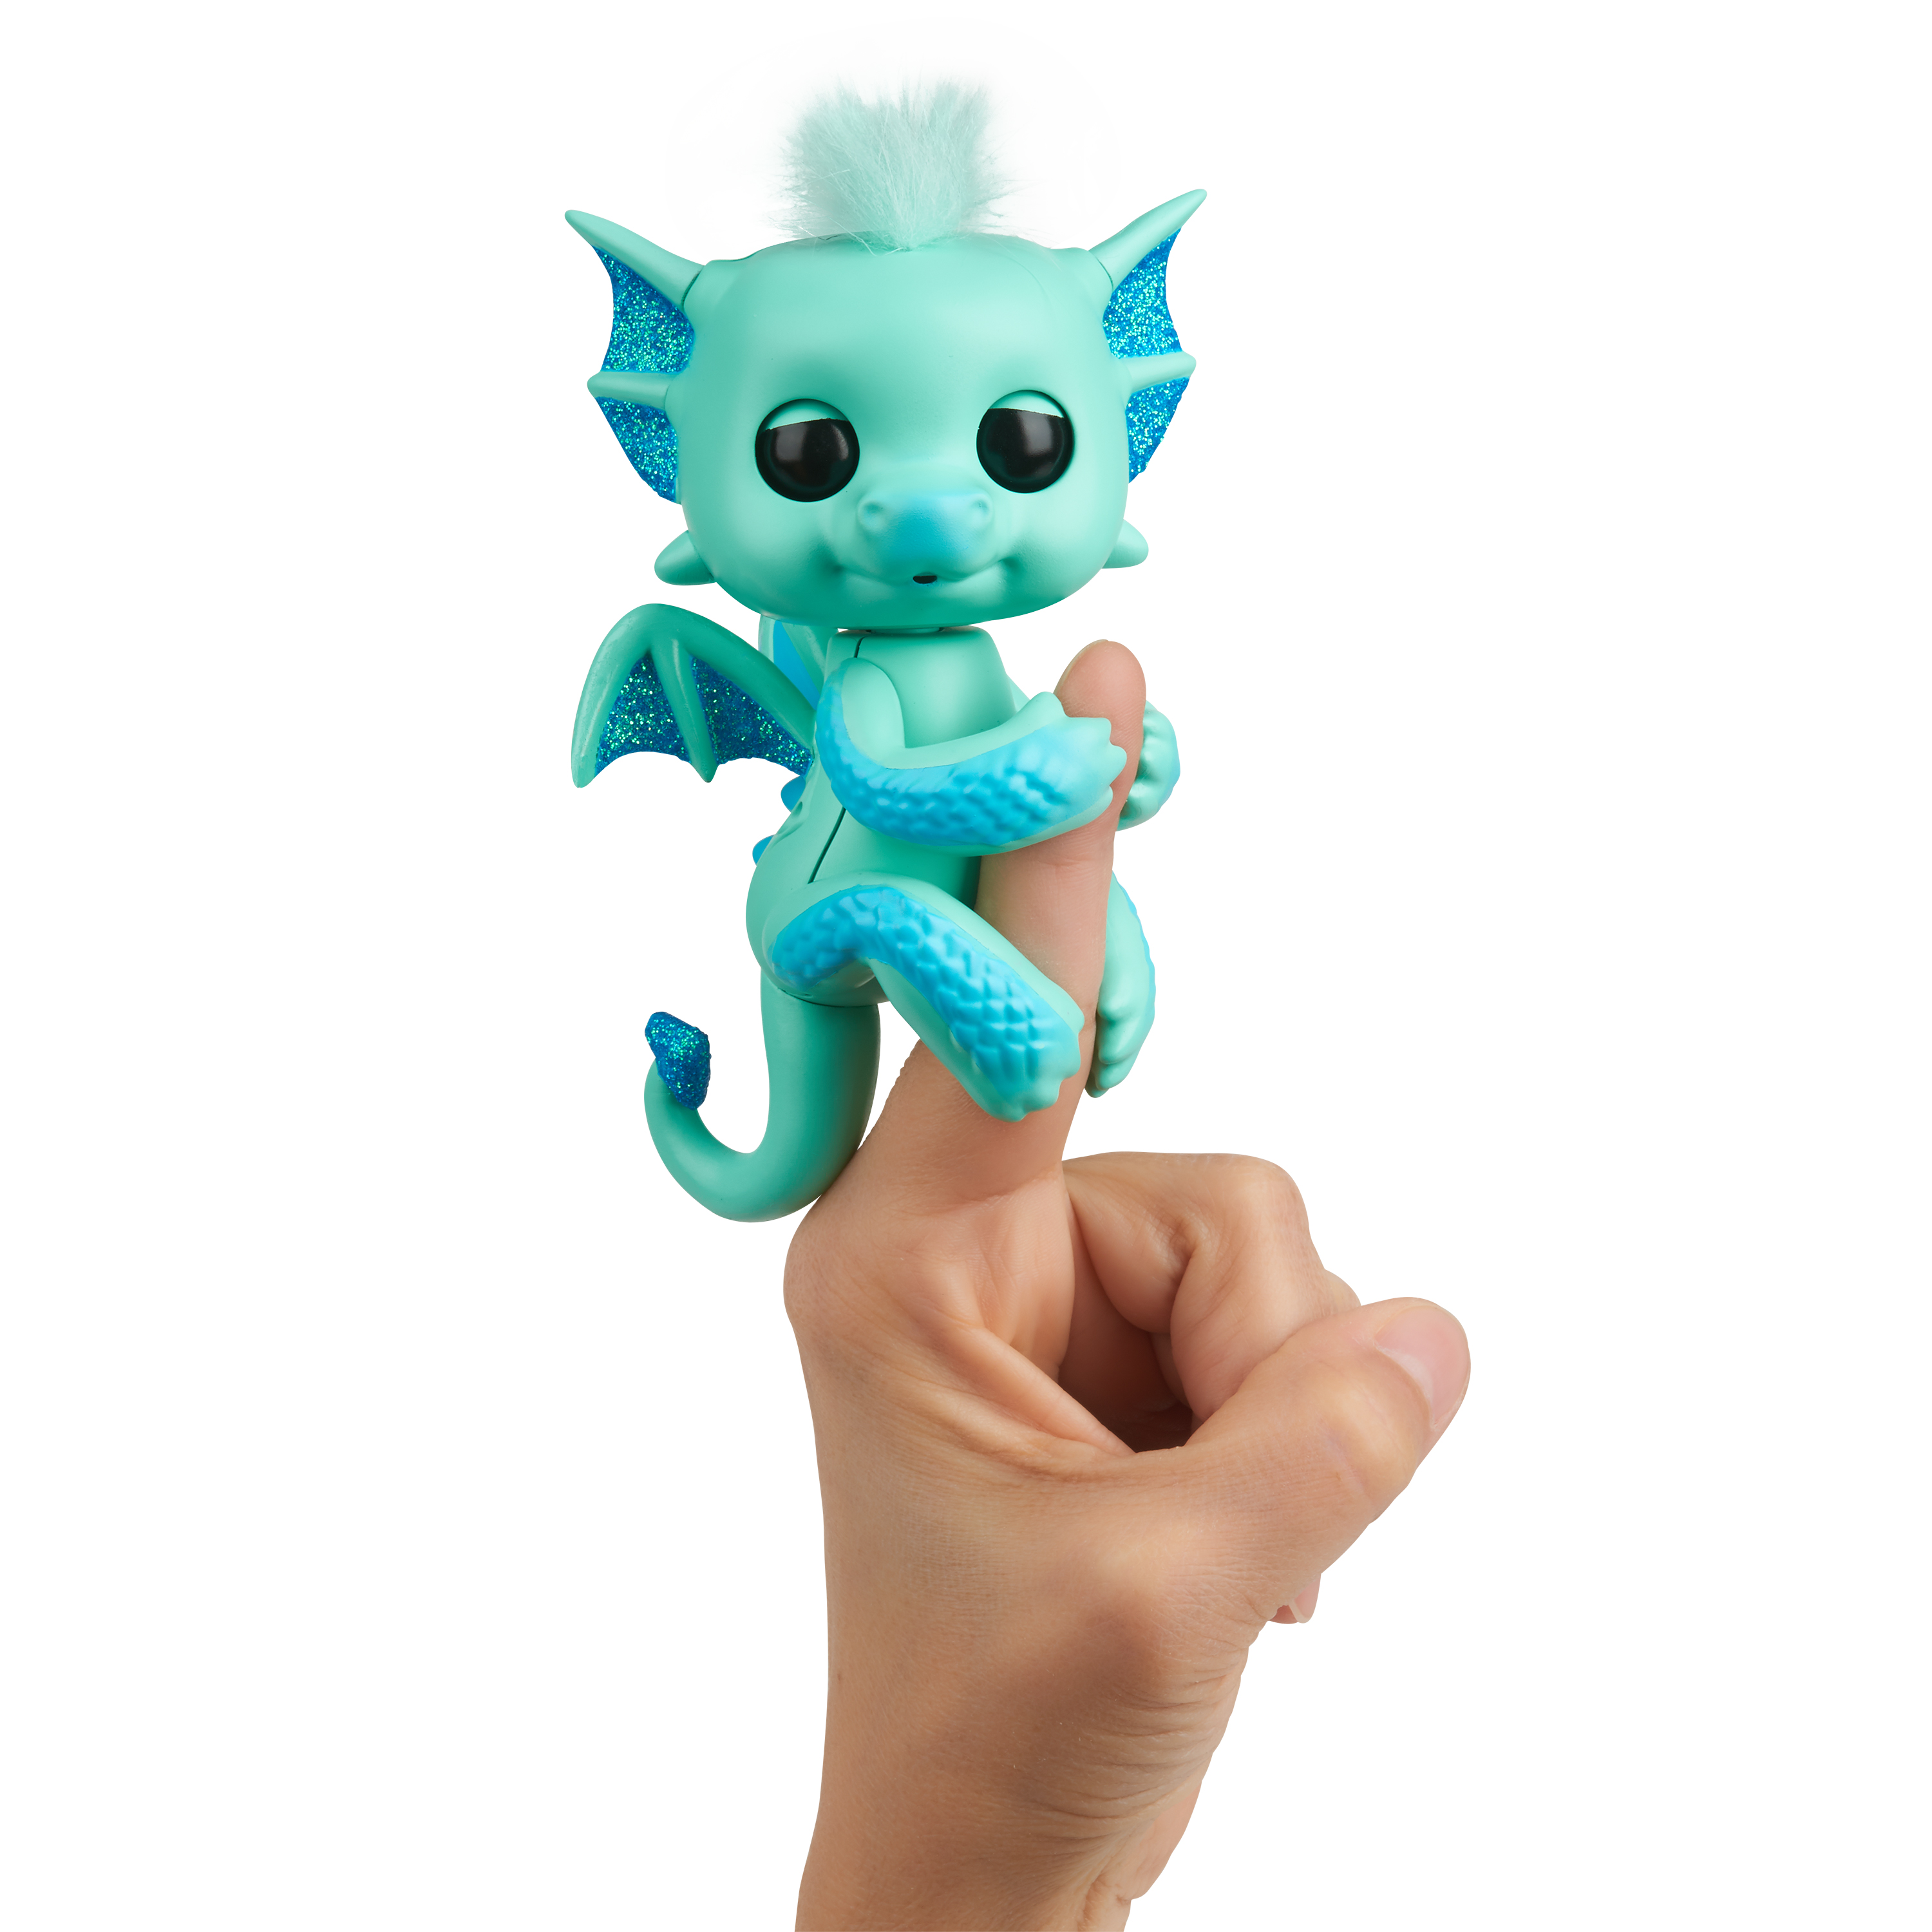 Fingerlings - Glitter Dragon - Noa (Green with Blue) - Interactive Baby Collectible Pet - By WowWee